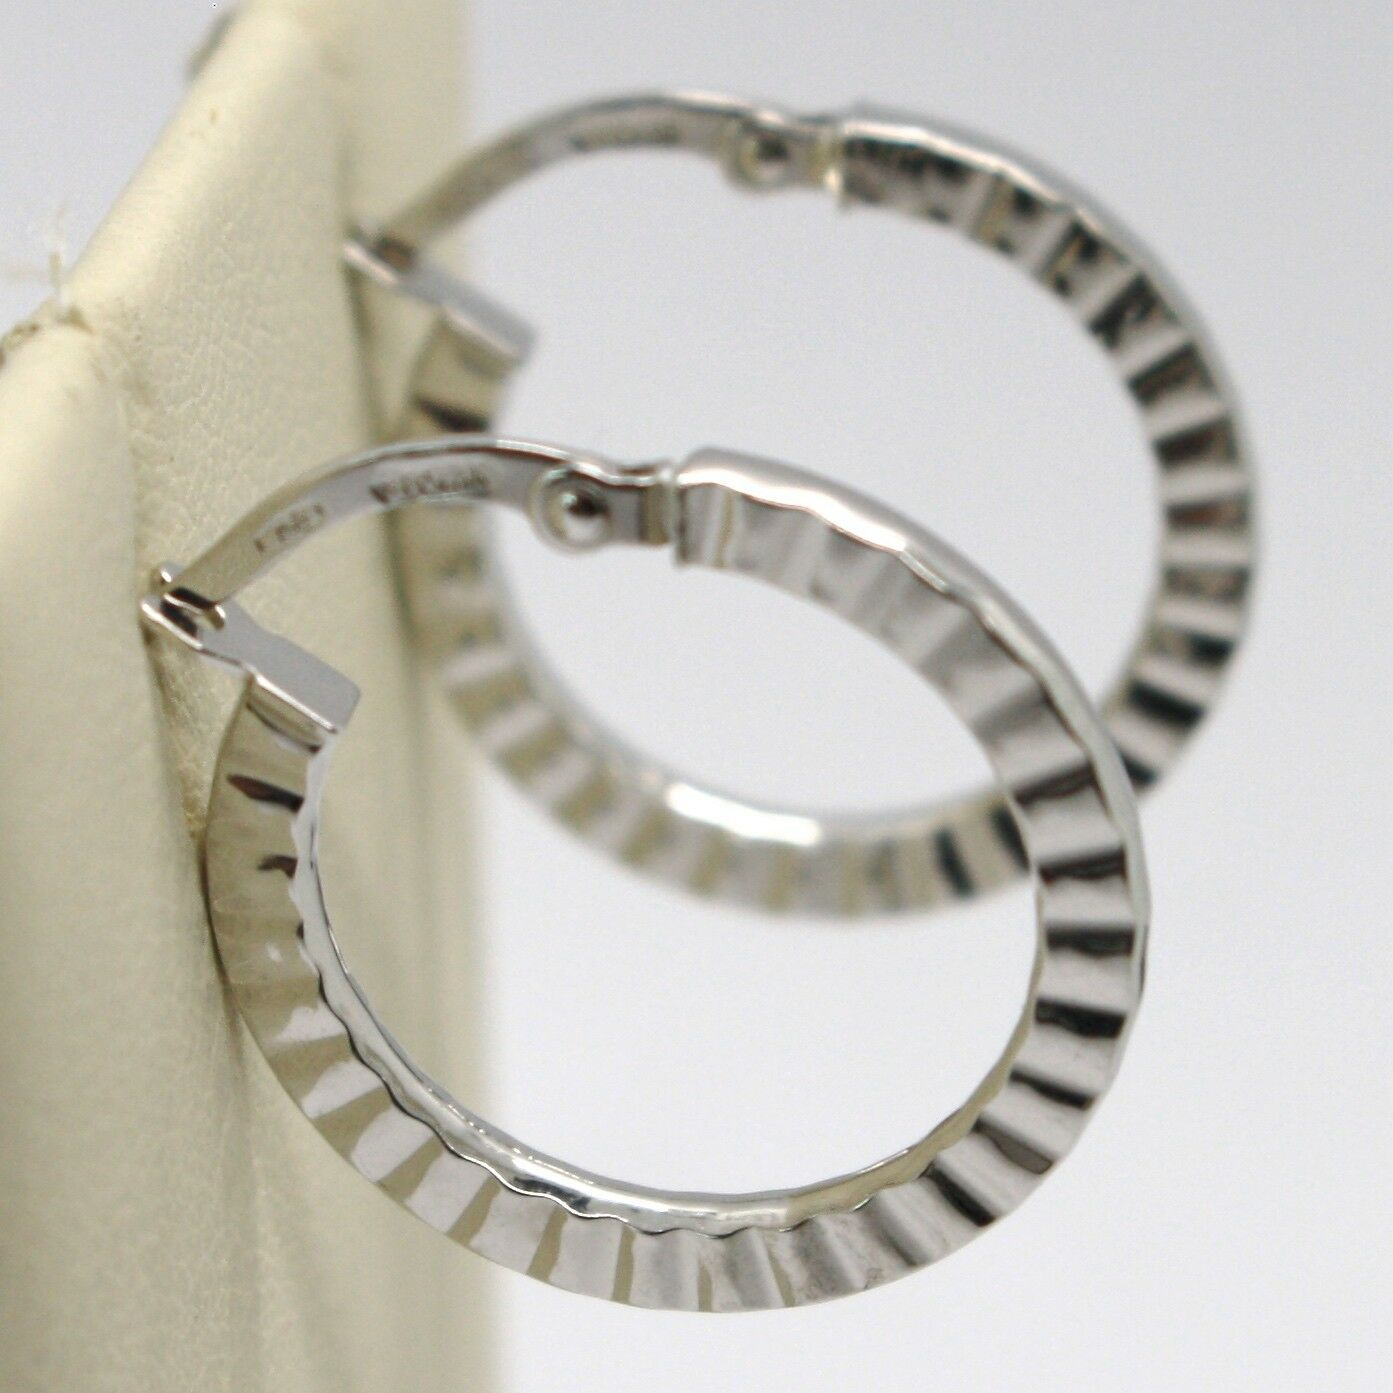 18K WHITE GOLD CIRCLE HOOPS STRIPED AND HAMMERED EARRINGS 21 MM x 2 MM, ITALY